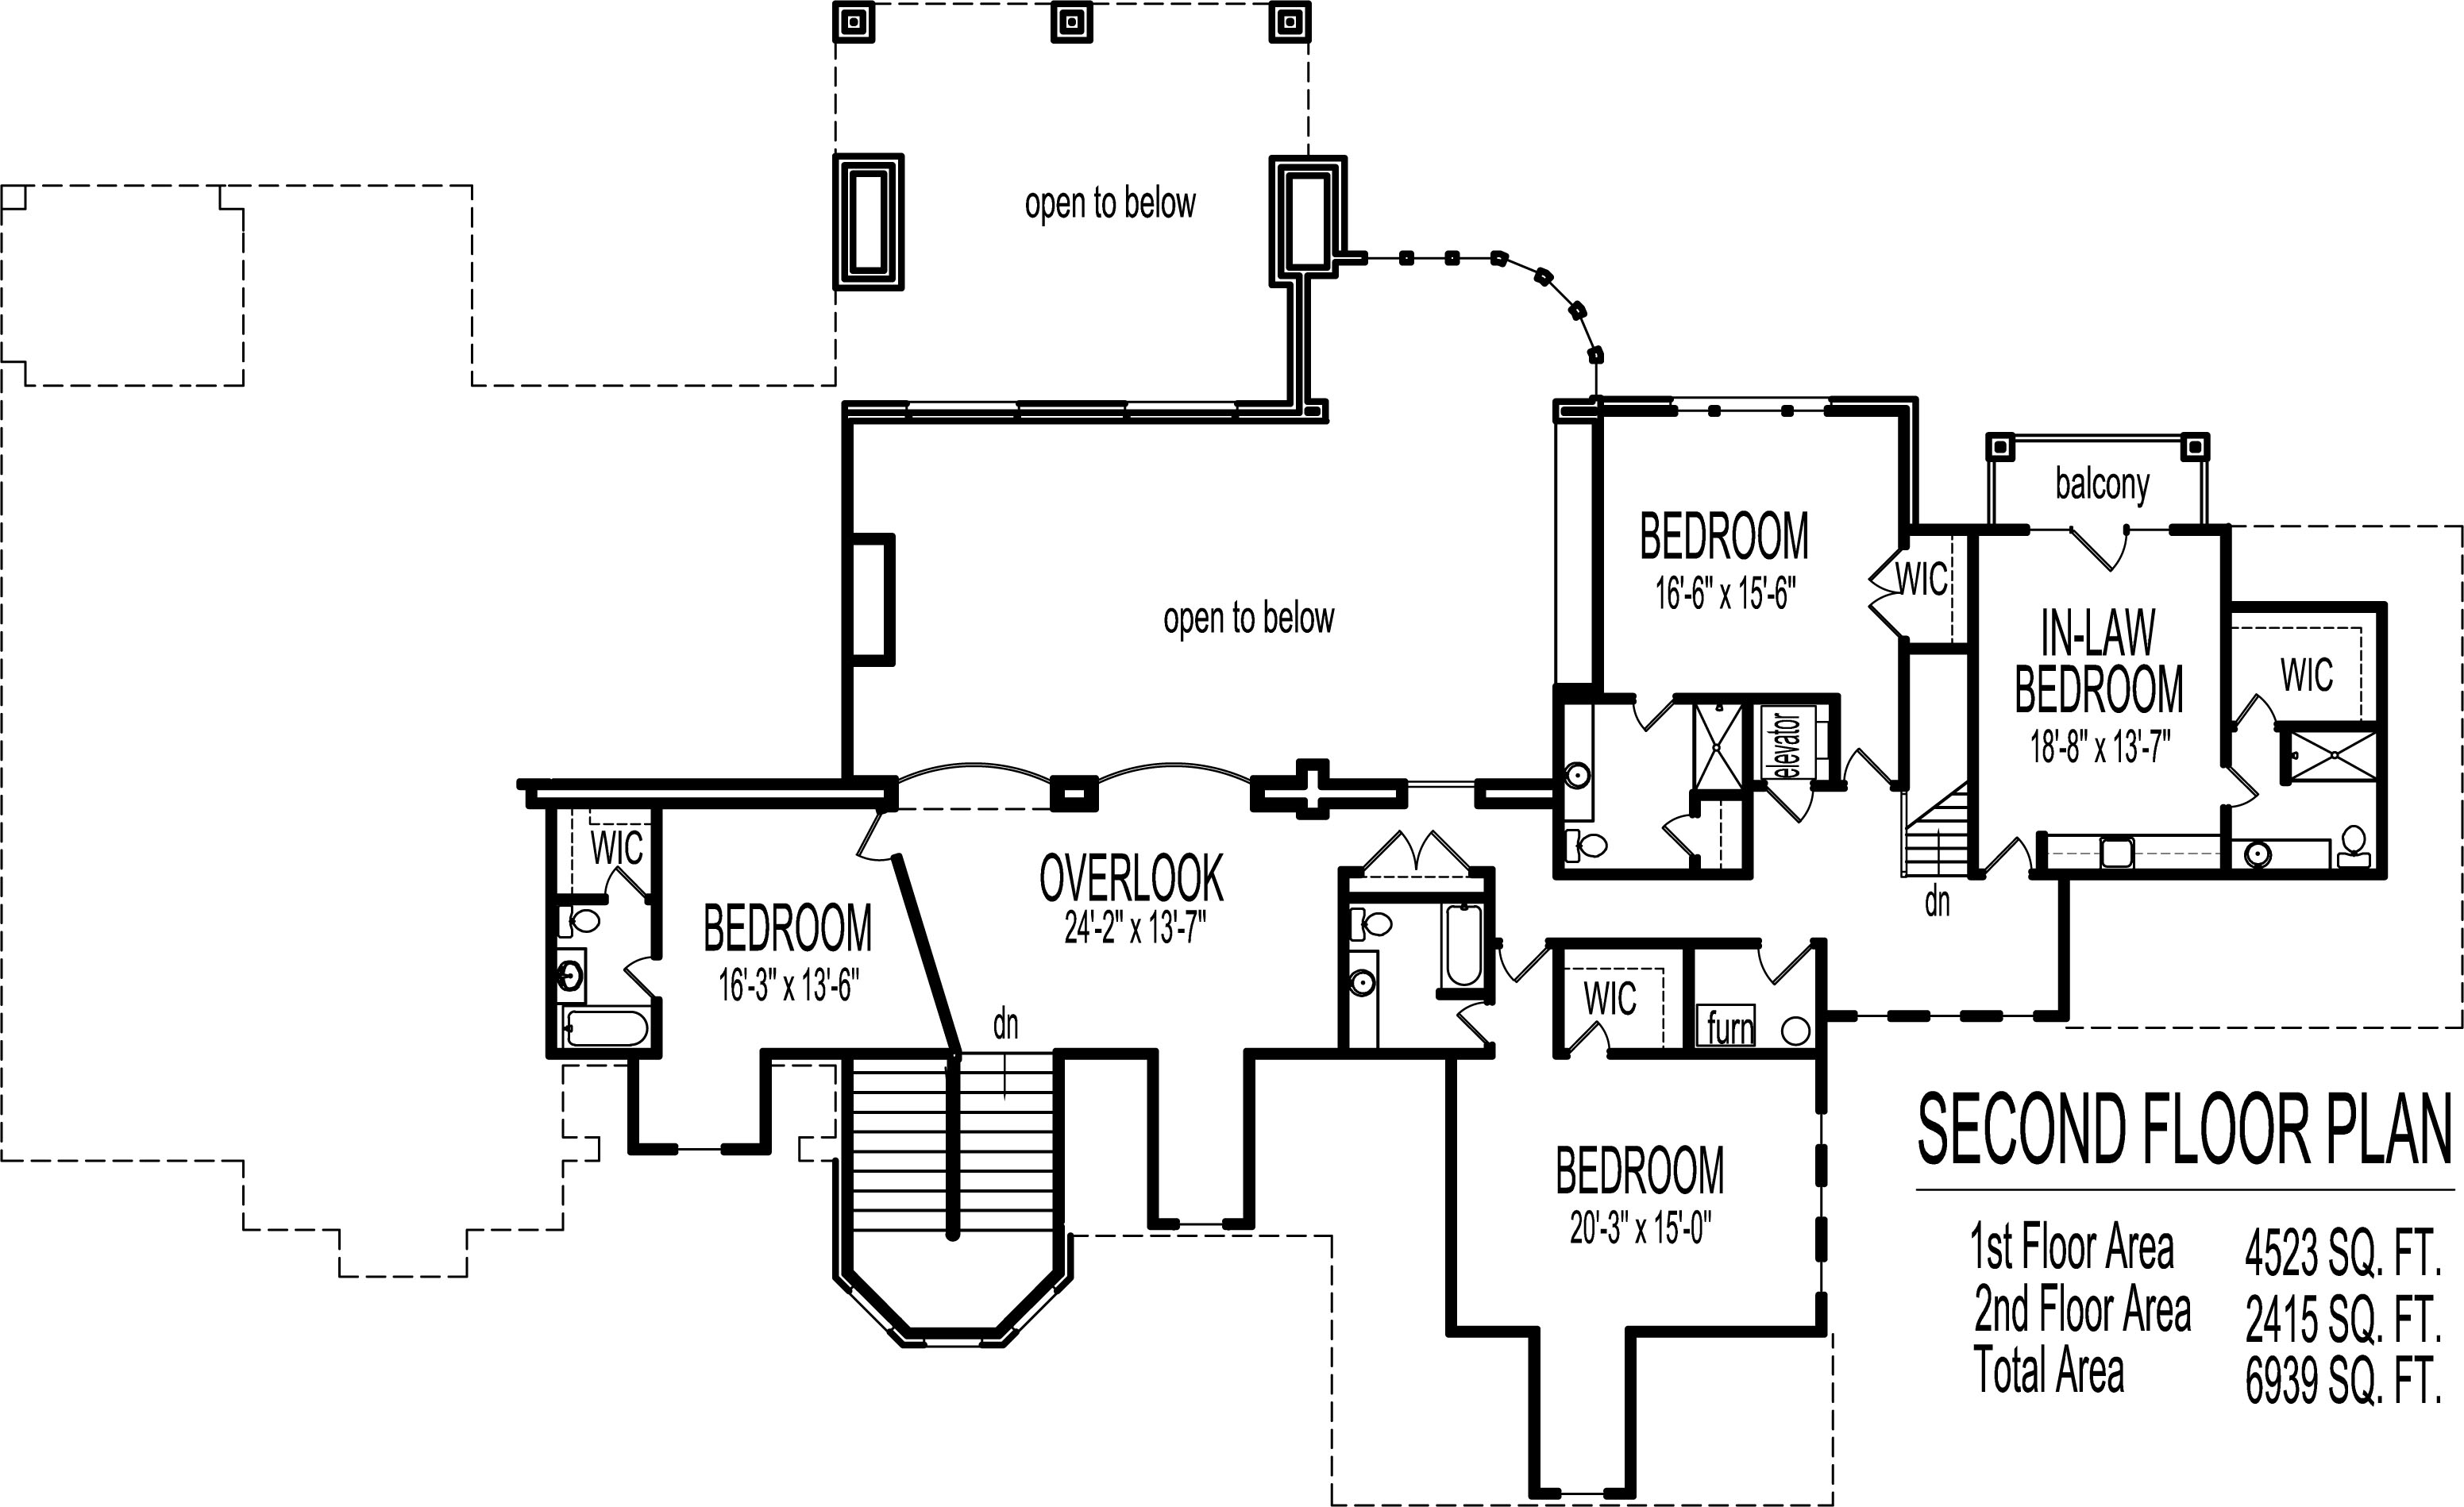 Dream house floor plans blueprints 2 story 5 bedroom large for 2 story house blueprints